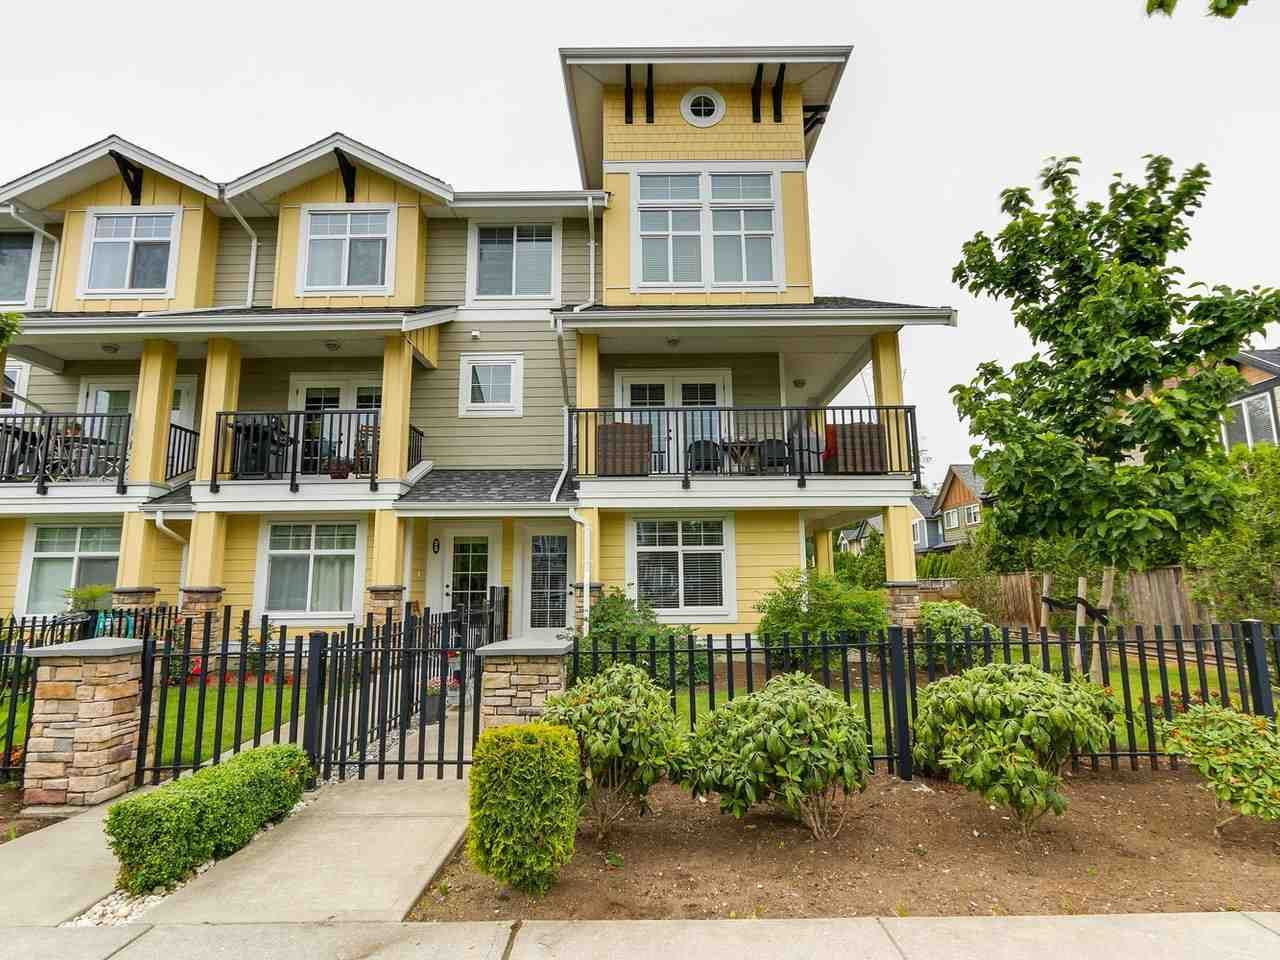 """Main Photo: 31 17171 2B Avenue in Surrey: Pacific Douglas Townhouse for sale in """"AUGUSTA TOWNHOUSES"""" (South Surrey White Rock)  : MLS®# R2280398"""